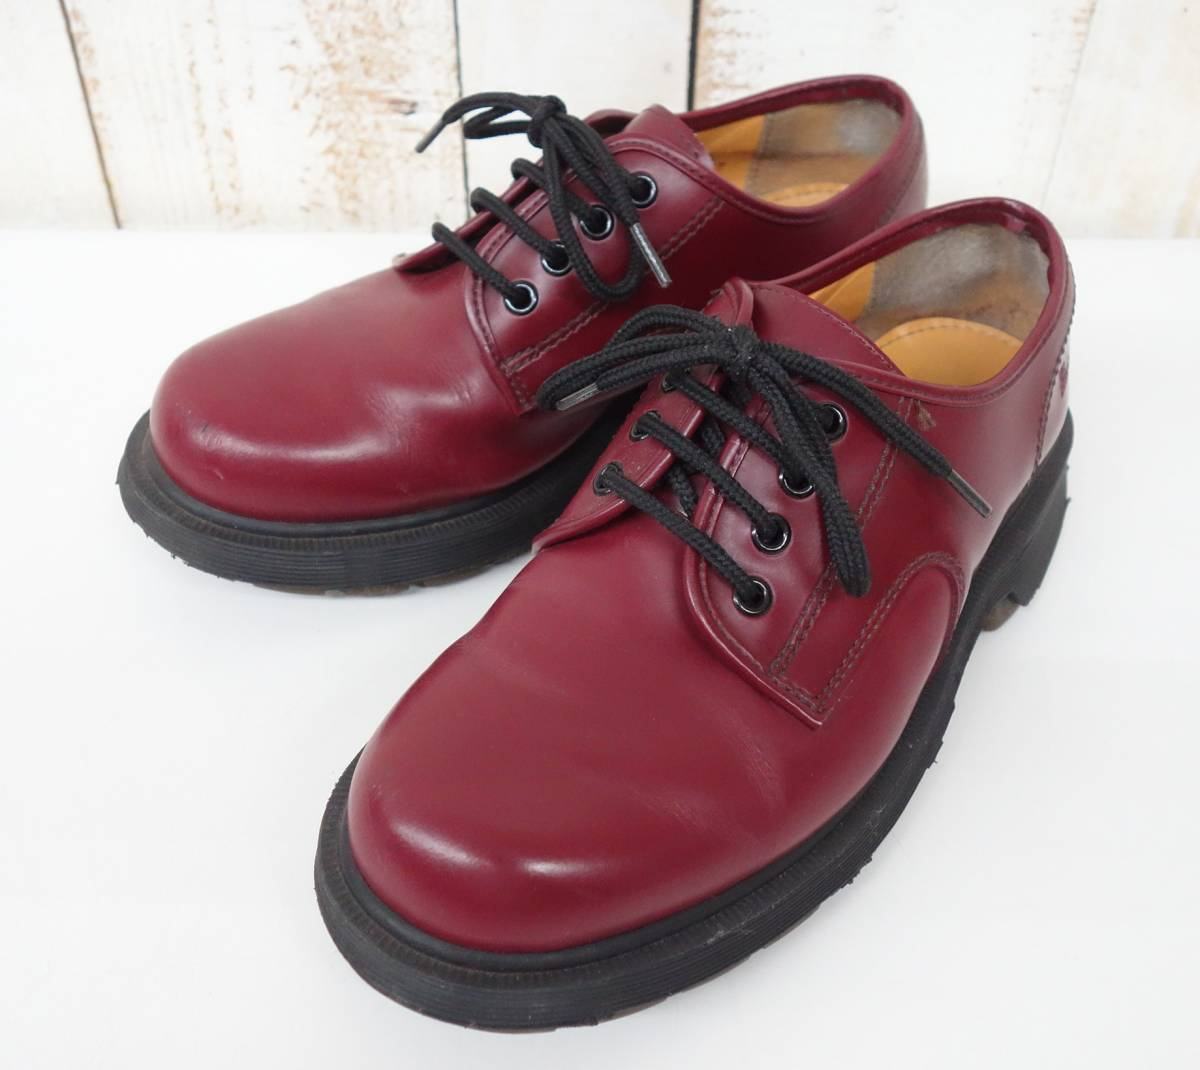 RETRO COLLECTION レア*The Original *Dr Martens ドクターマーチン*3ホールシューズ*COL.OXBLOOD*MADE IN ENGLAND 英国製* SIZE7